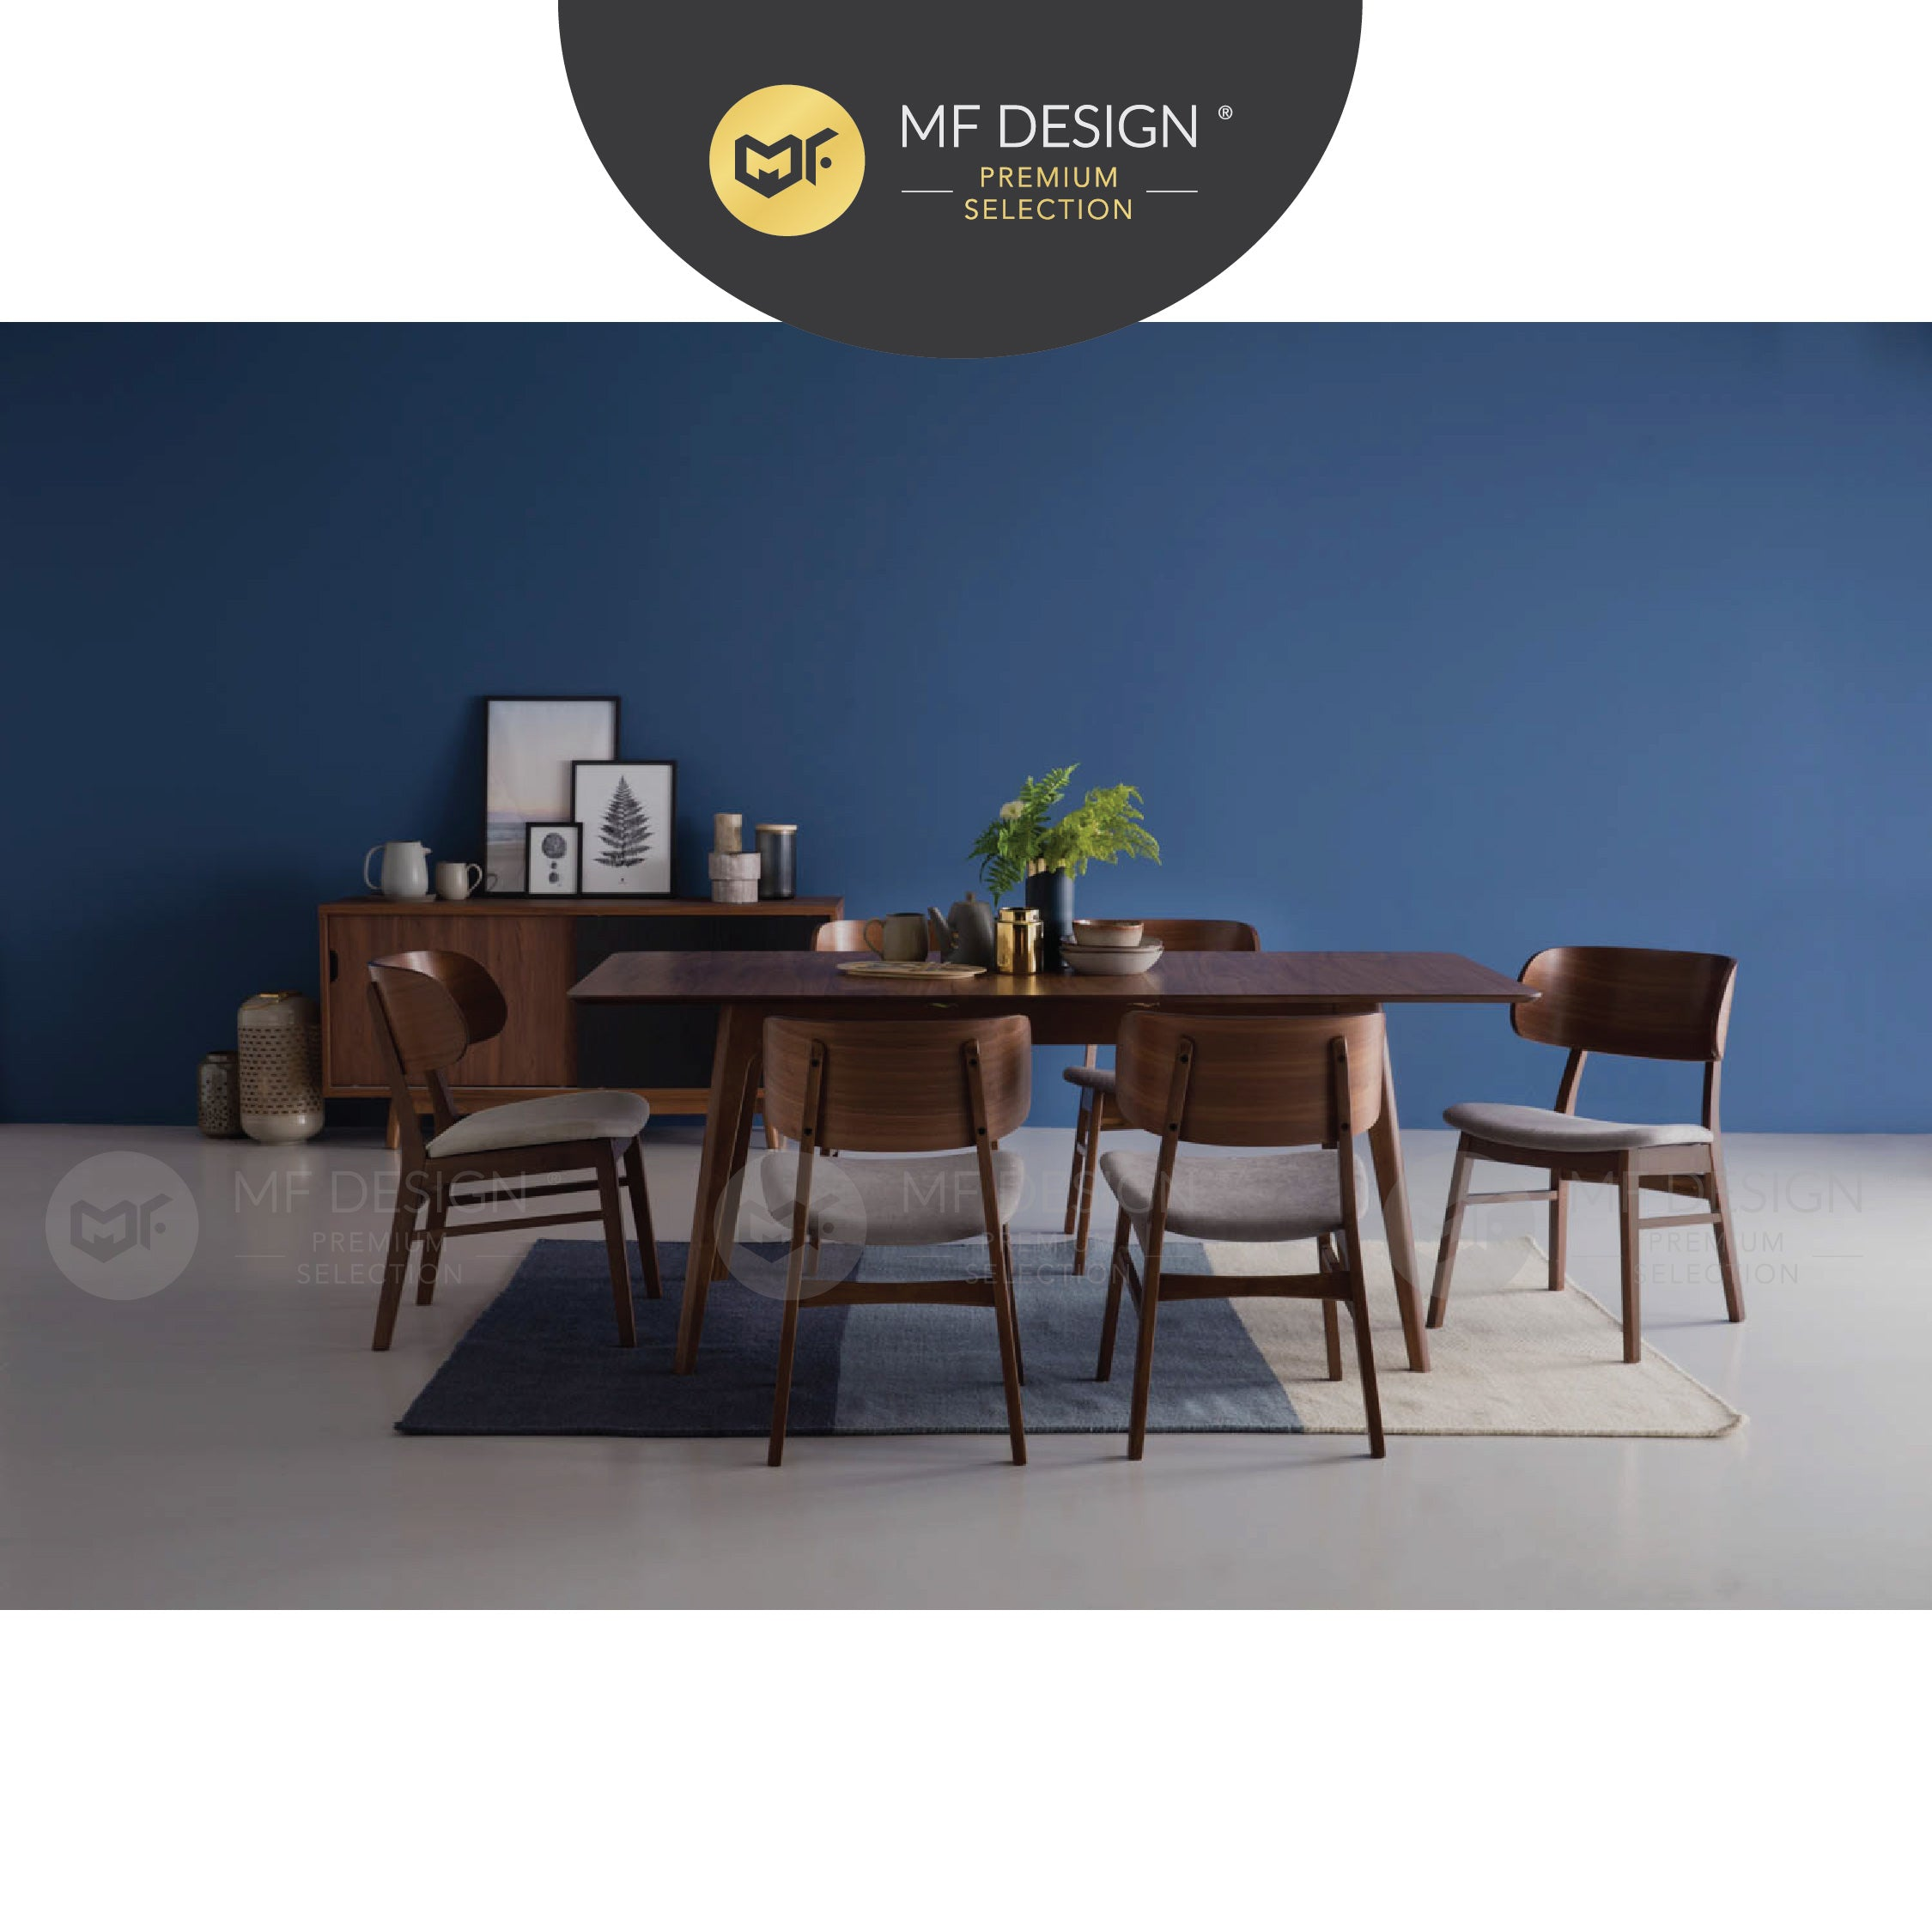 MFD Premium Aiden Dining Chair / kerusi / chair